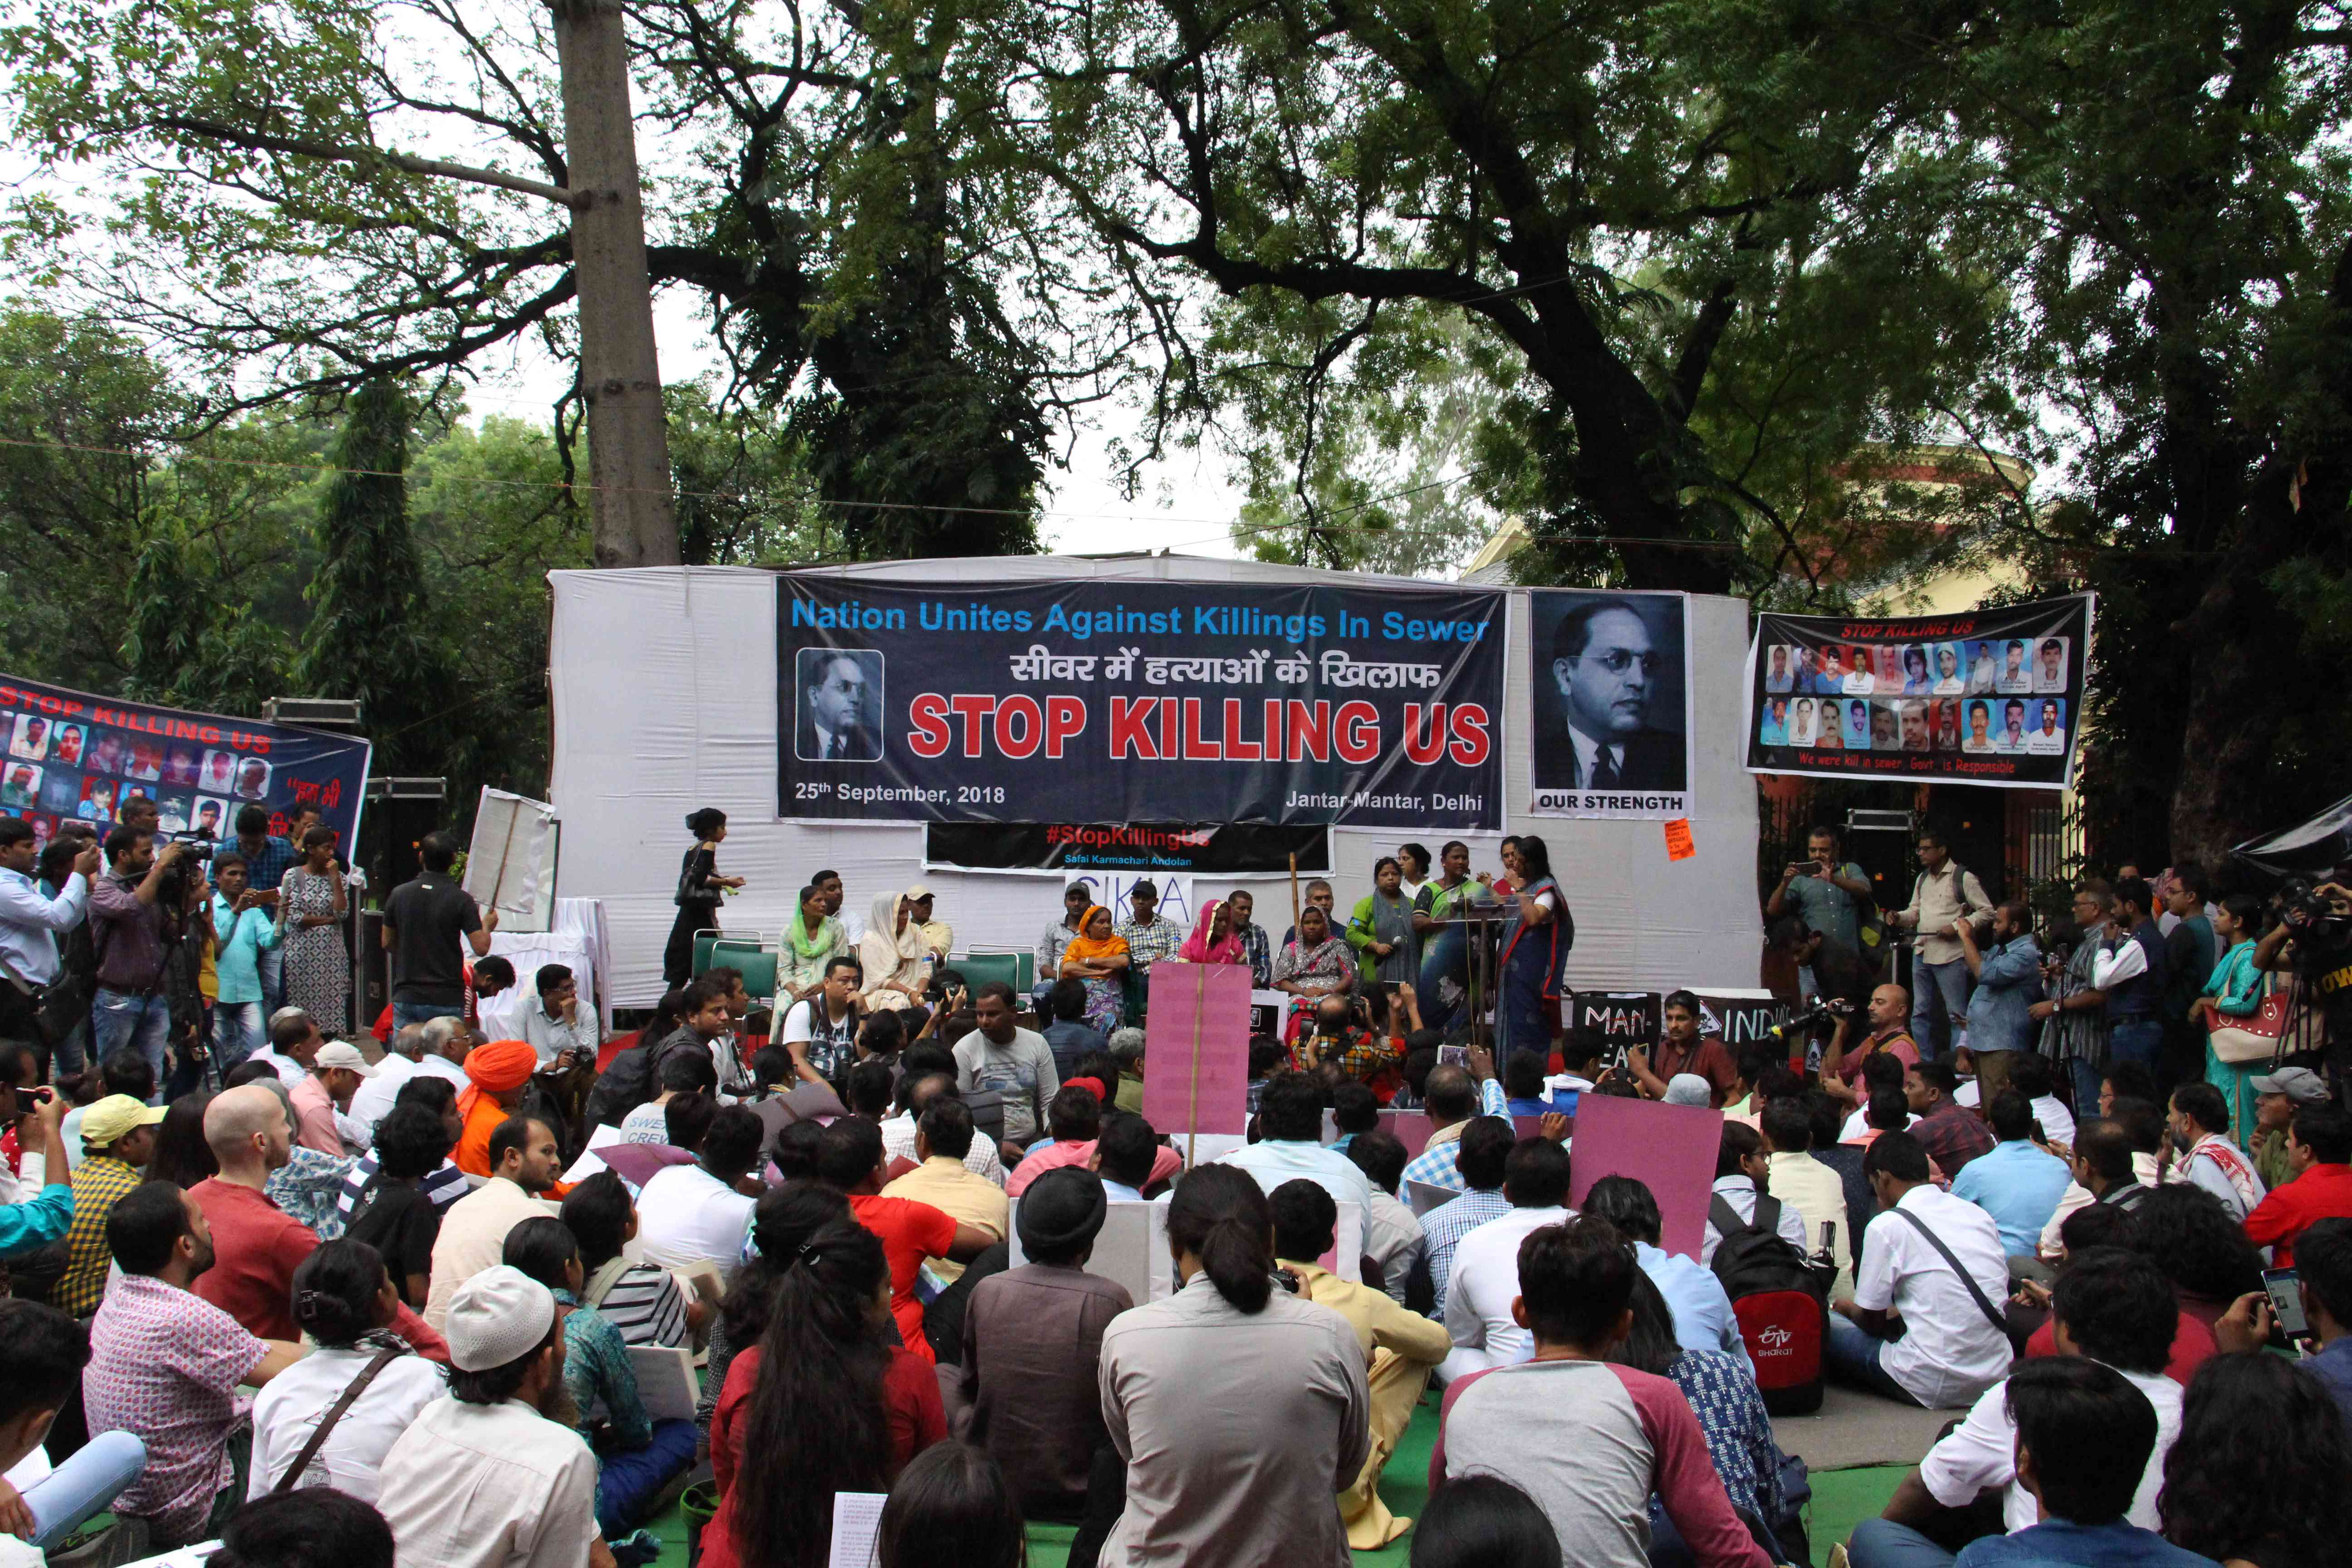 Sewer workers, activists and students from across India joined the protest at Jantar Mantar. Photo credit: Aabid Shafi